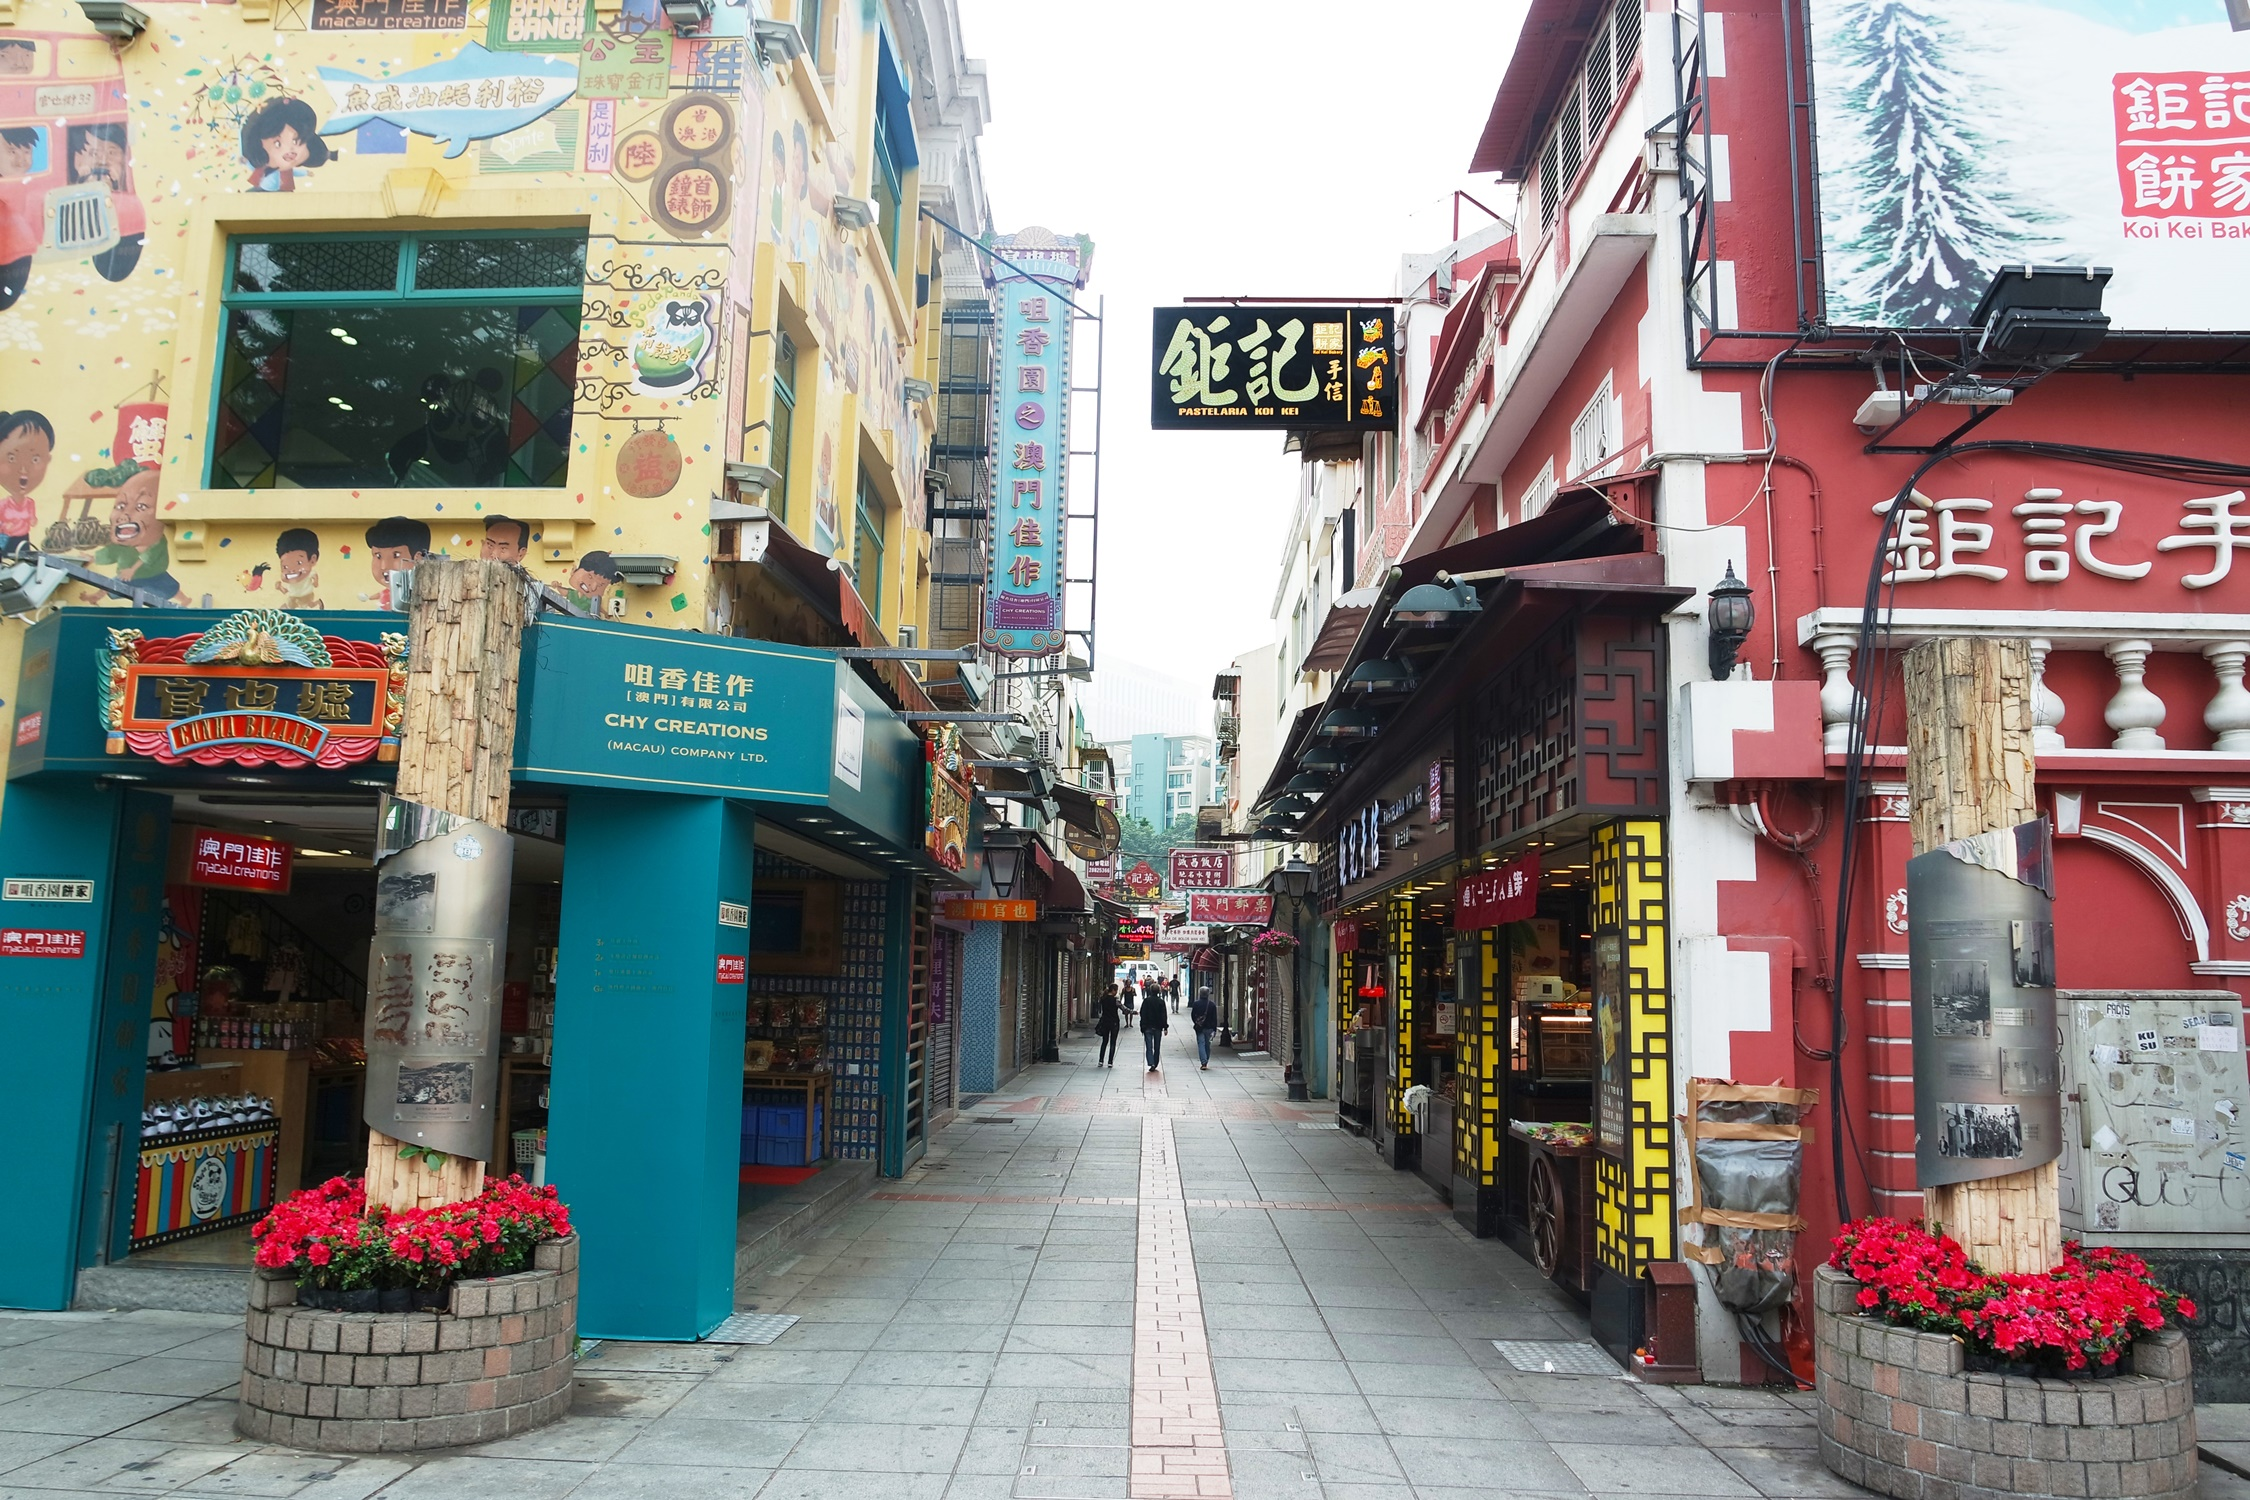 Main Street at Old Taipa Village